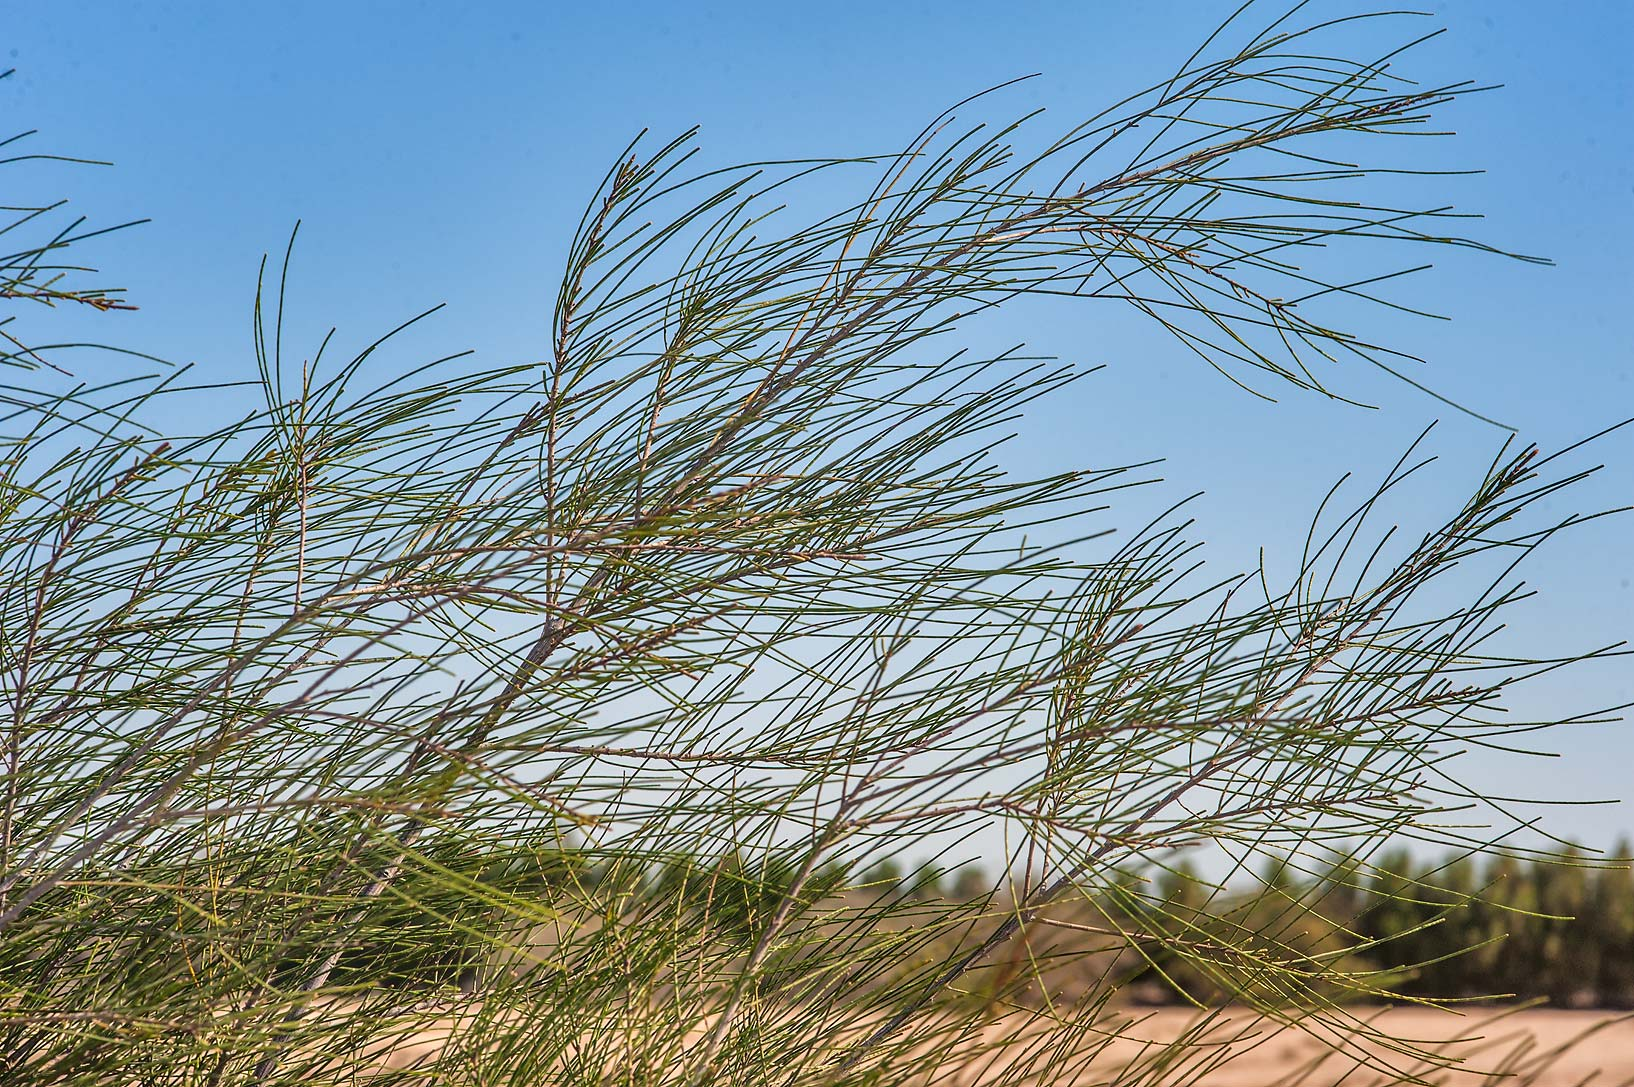 Australian pine (she-oak, Casuarina equisetifolia...between Al Khor and Ras Luffan. Qatar